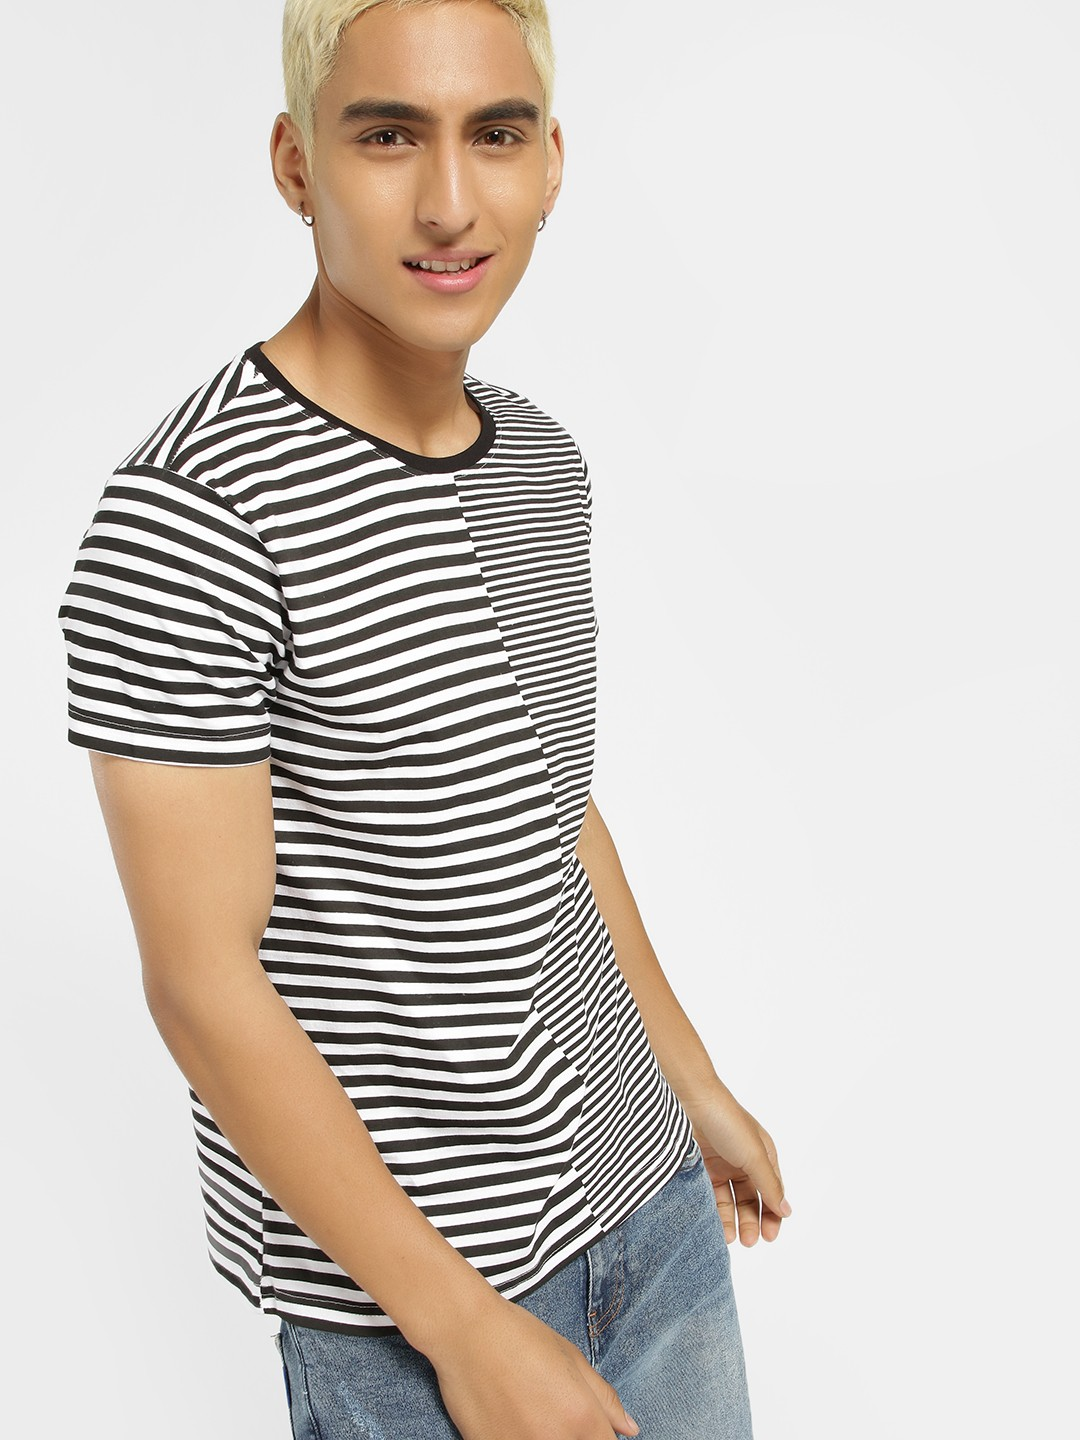 Blue Saint Multi Clashing Stripes T-Shirt 1